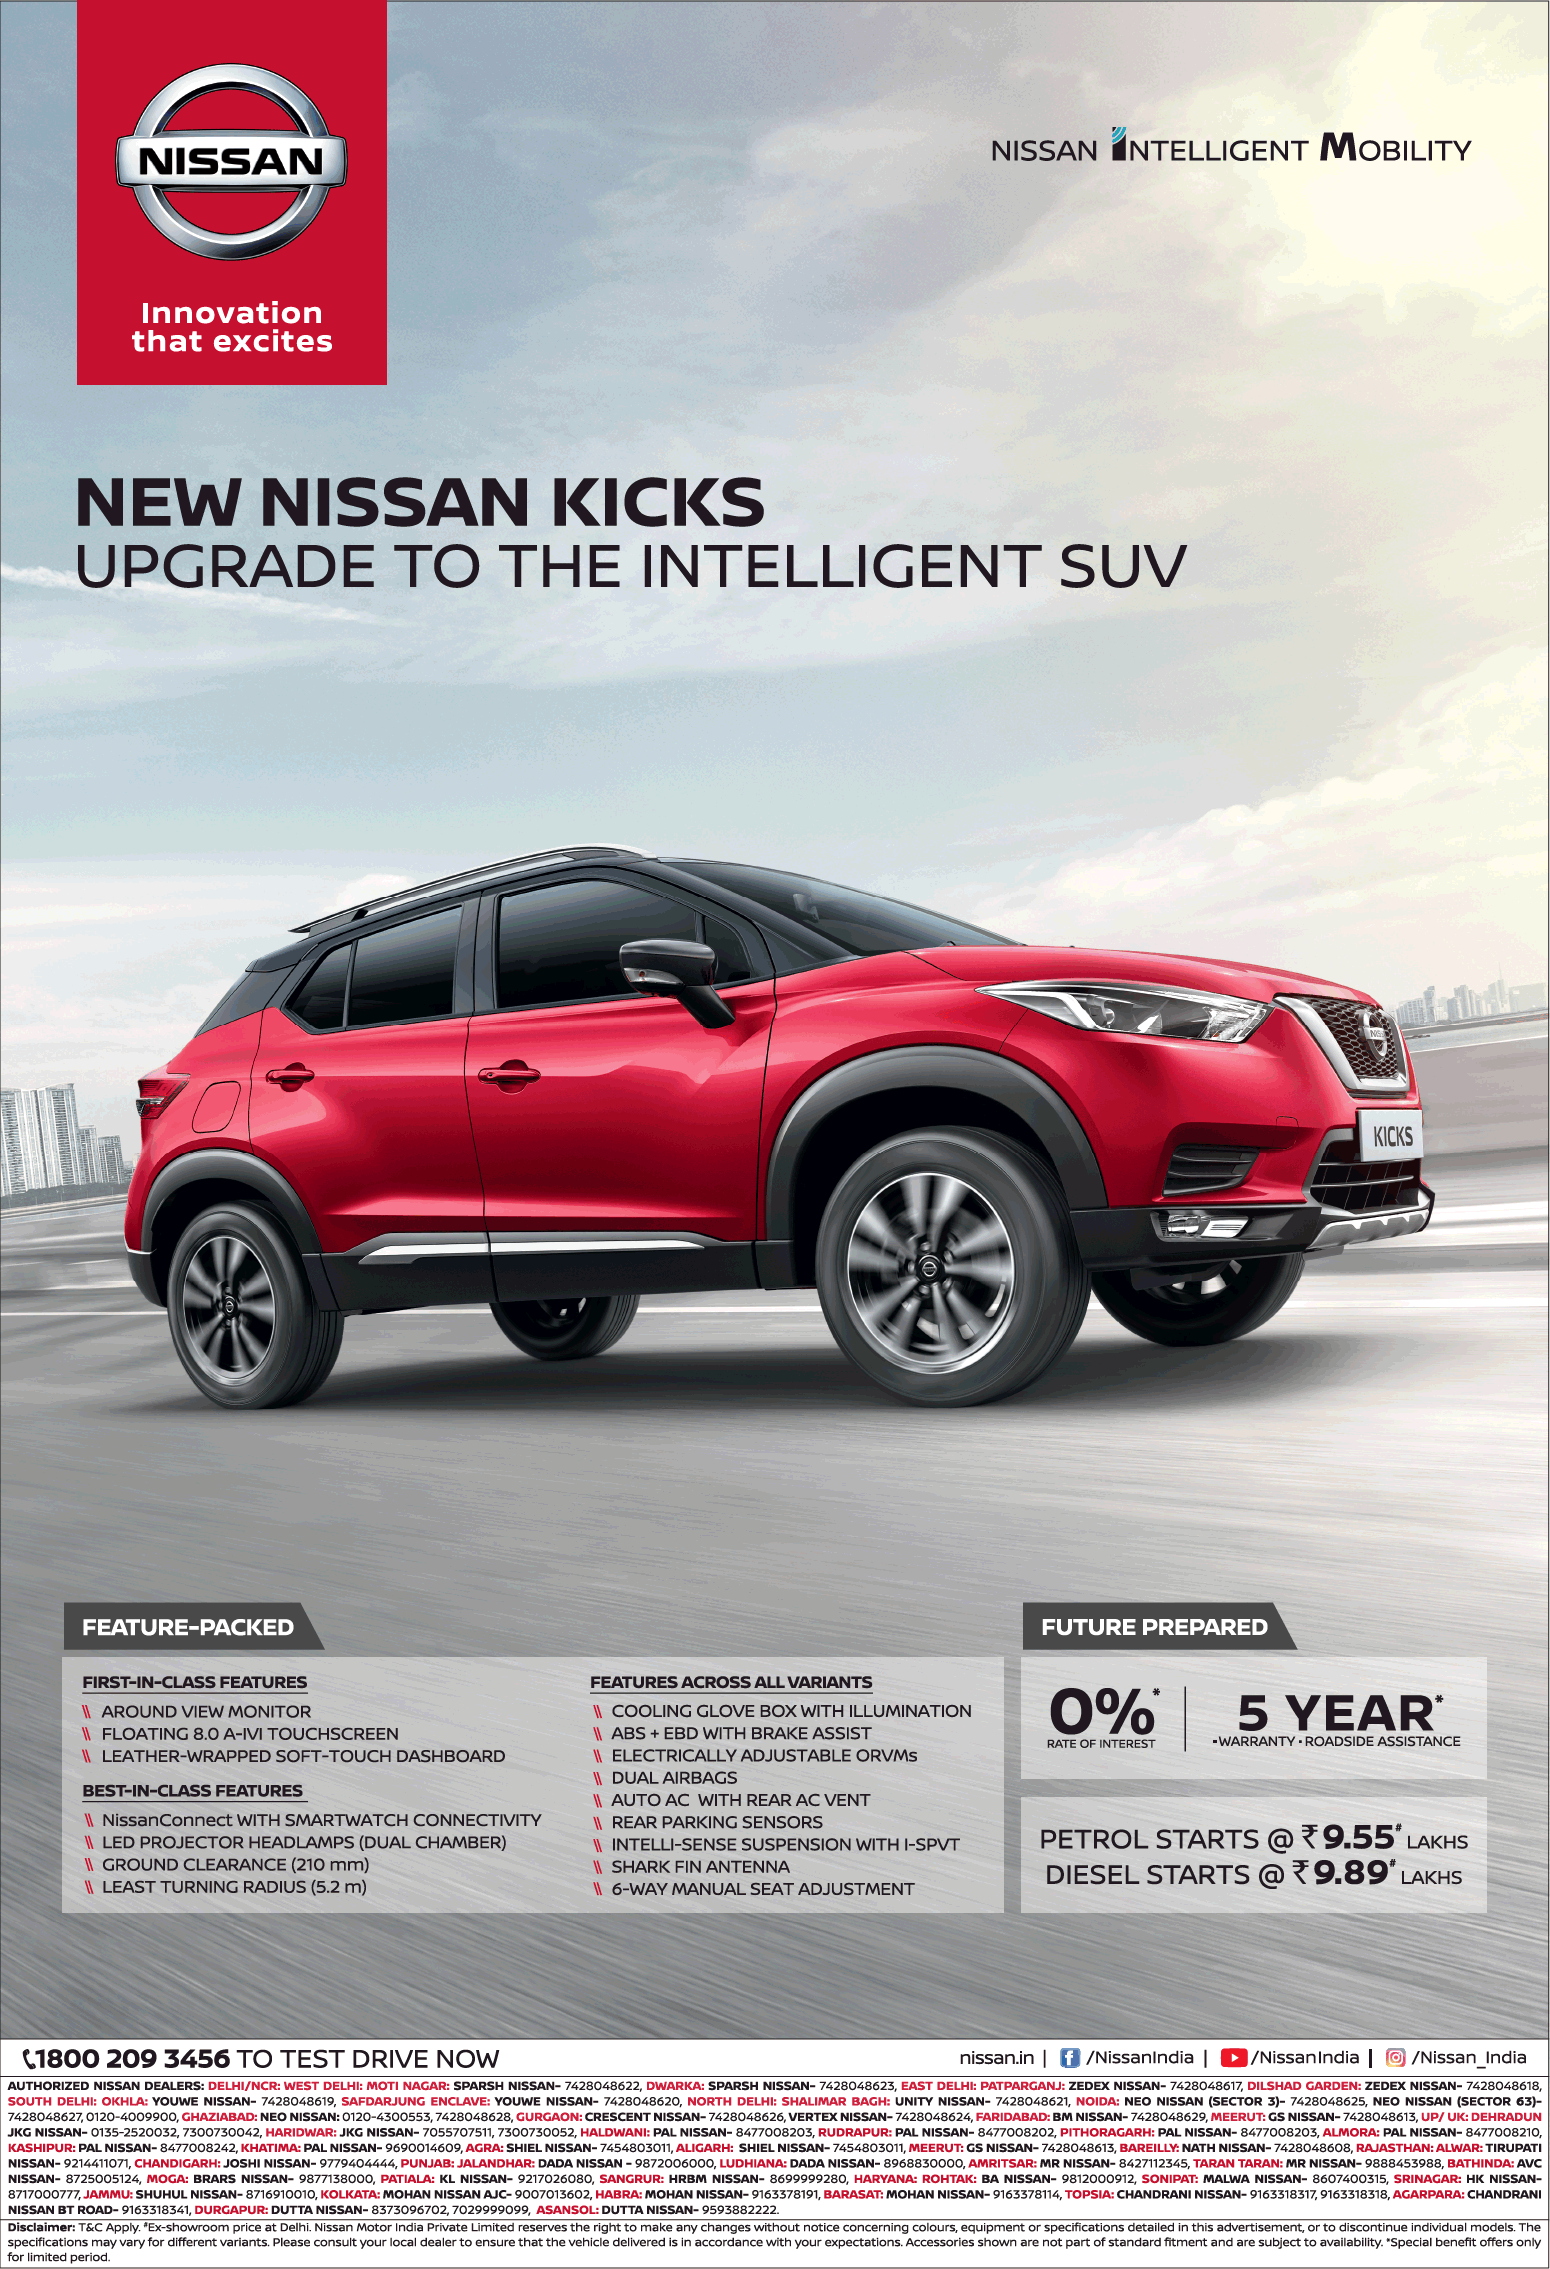 What Is The Song In The 2021 Nissan Kicks advert